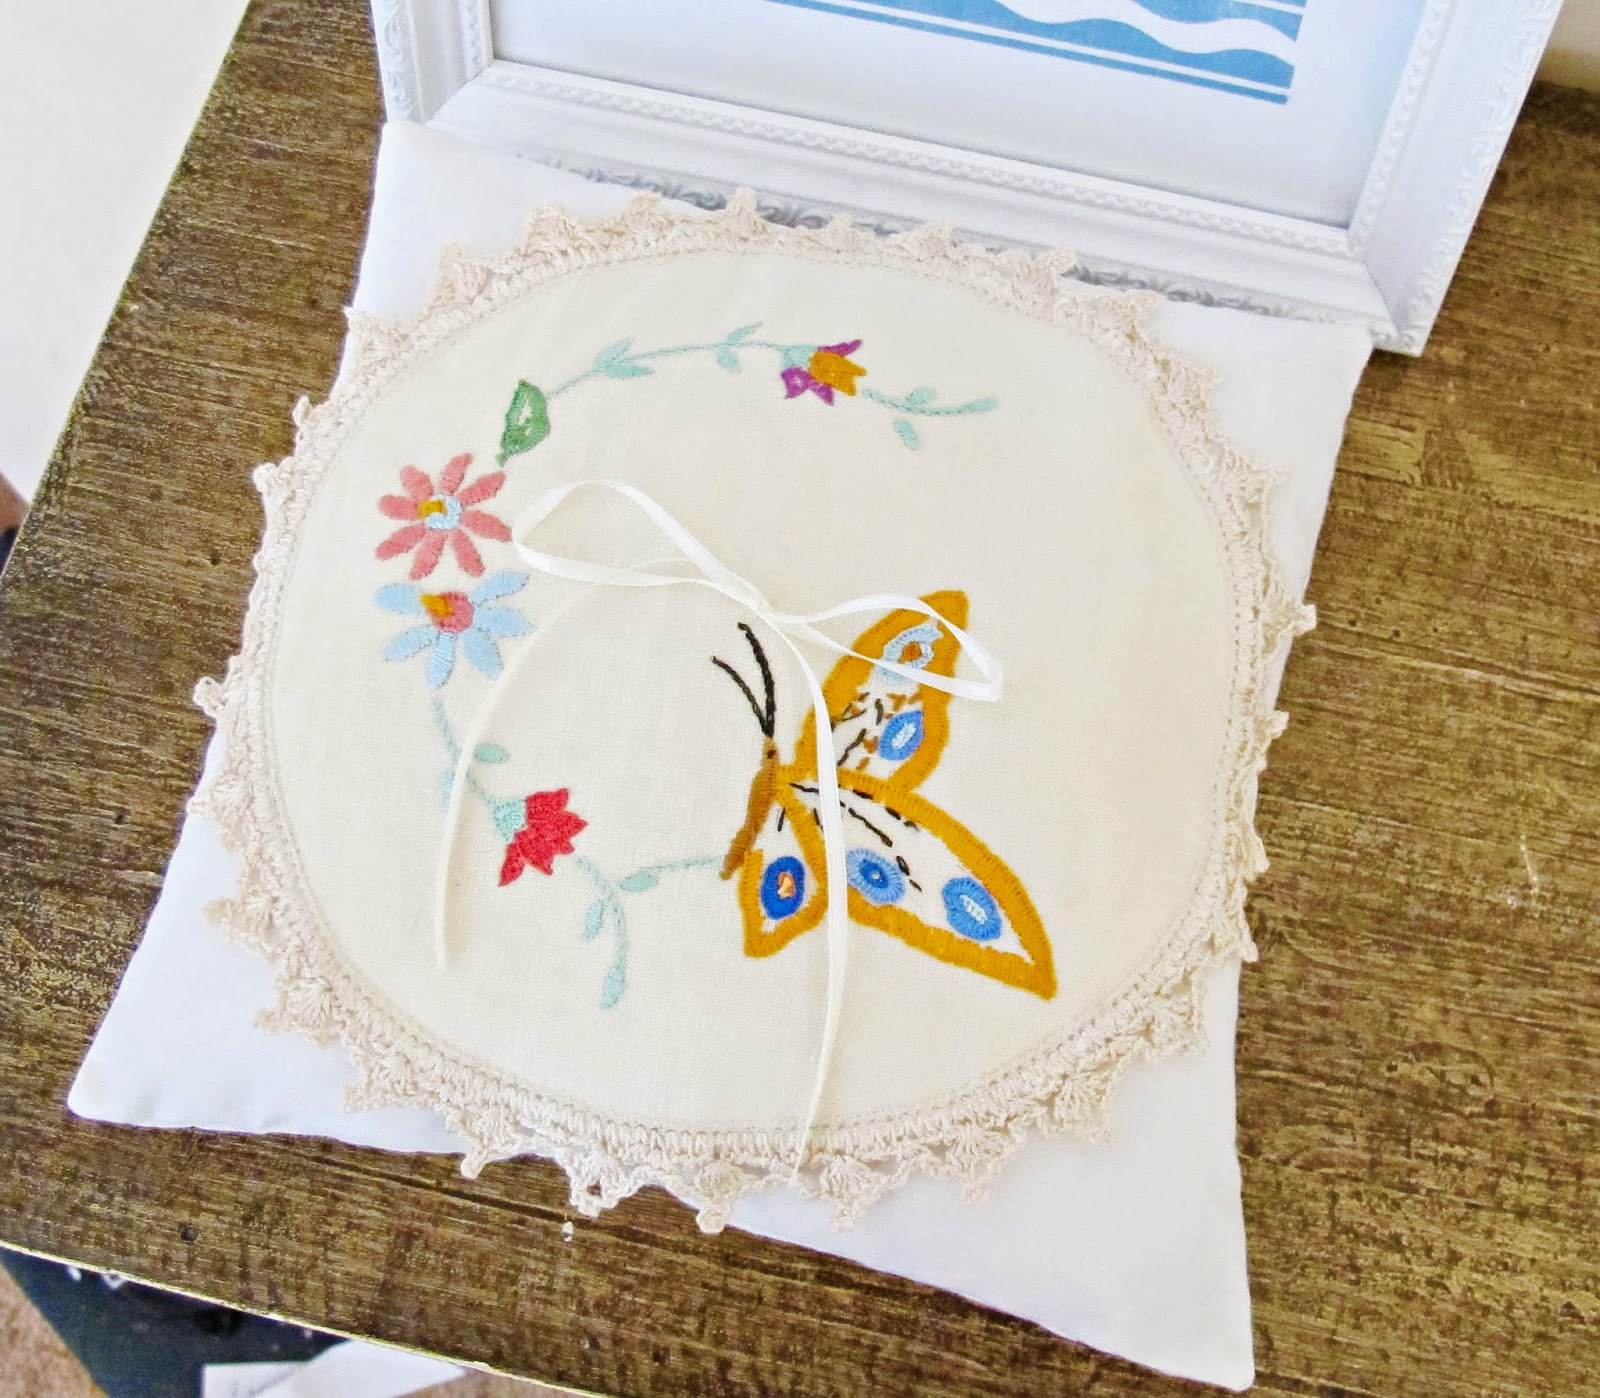 image shabby chic ring bearer pillow wedding ring butterfly flowers embroidery vintage doily linen domum vindemia